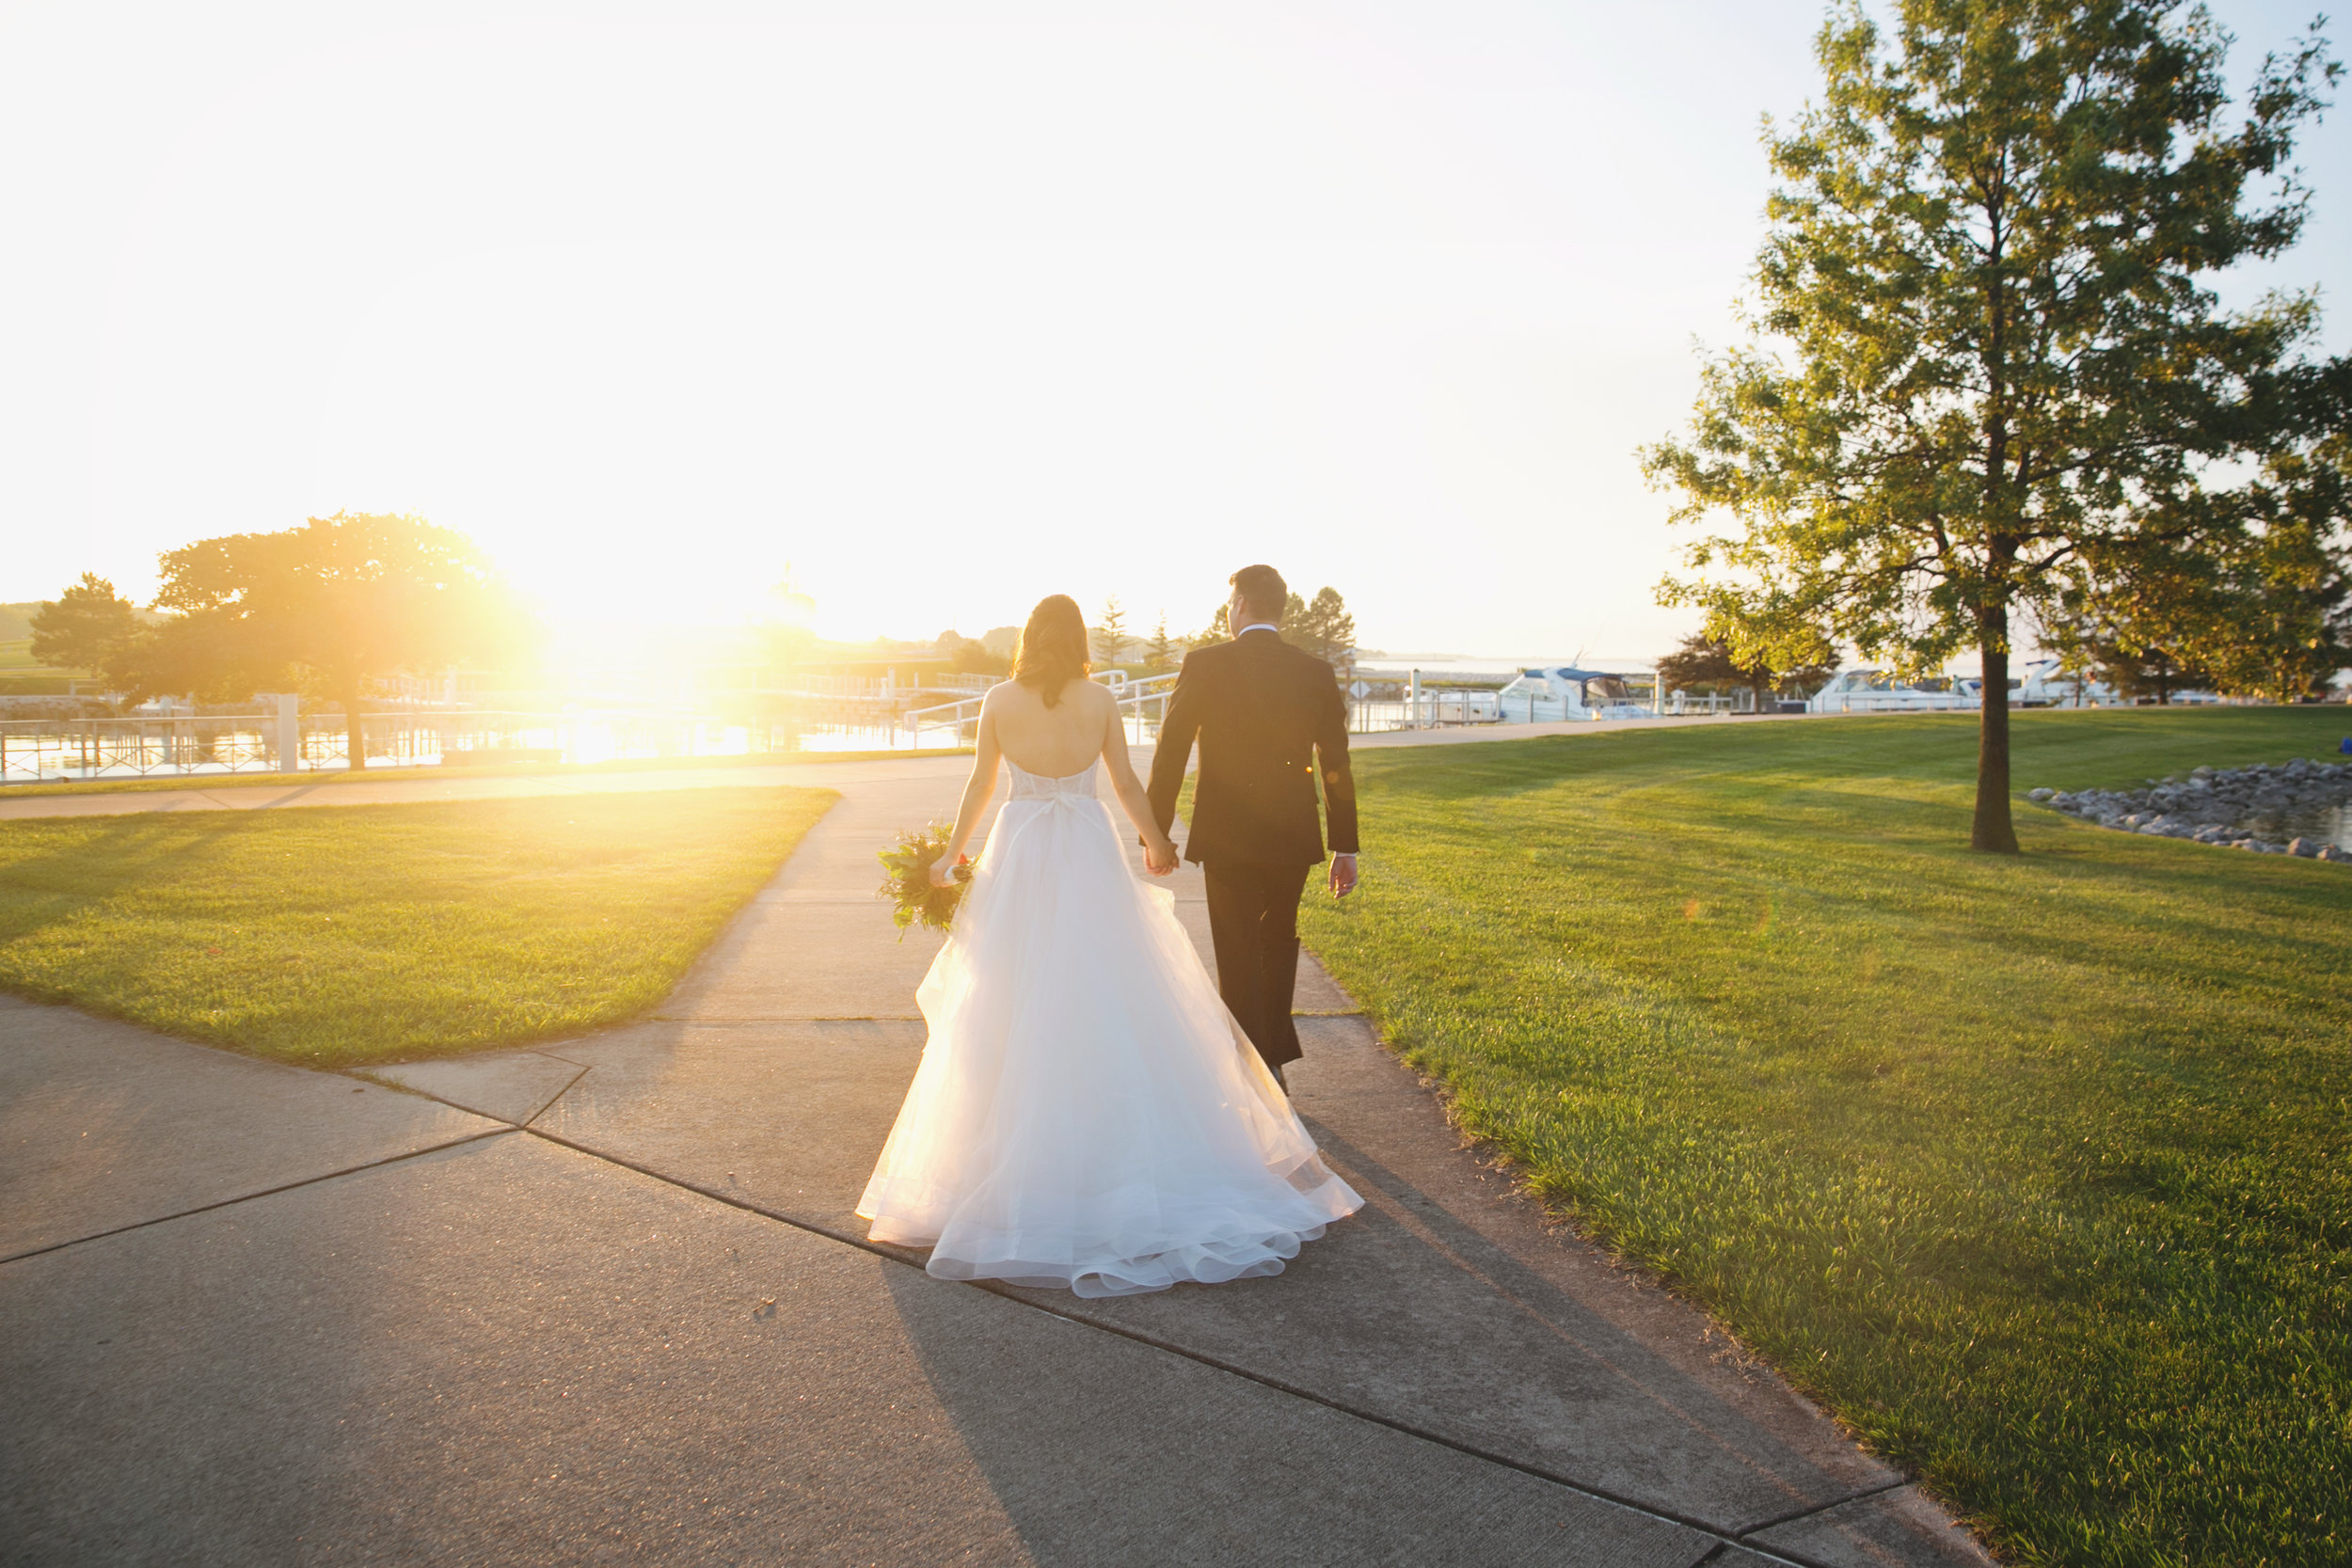 *Golden Hour getting ready to show off during a wedding day at Maumee Bay State Park! :D